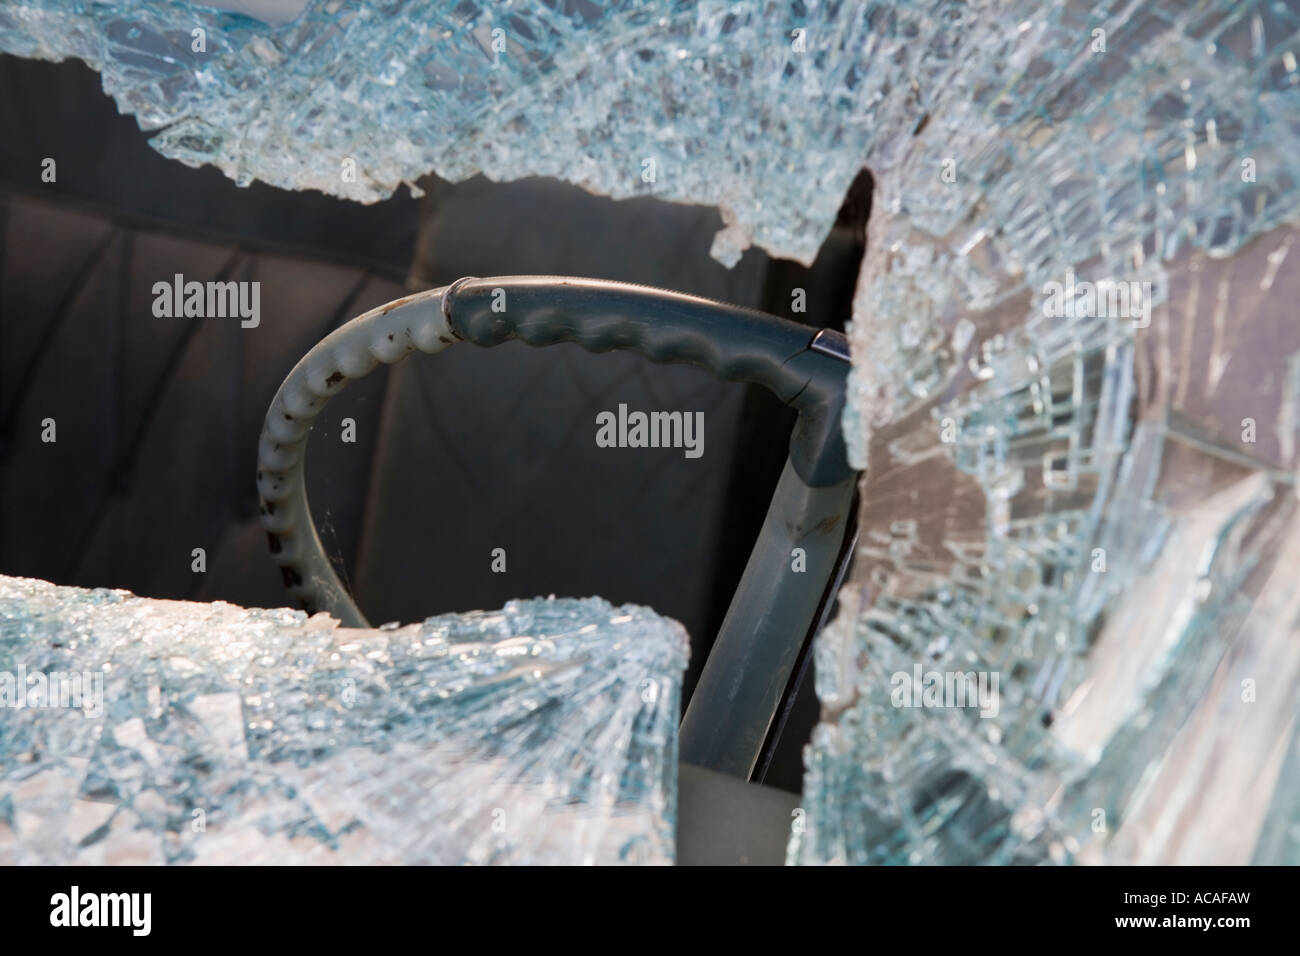 Aftermath of an automobile accident fatality shattered glass windshield - Stock Image